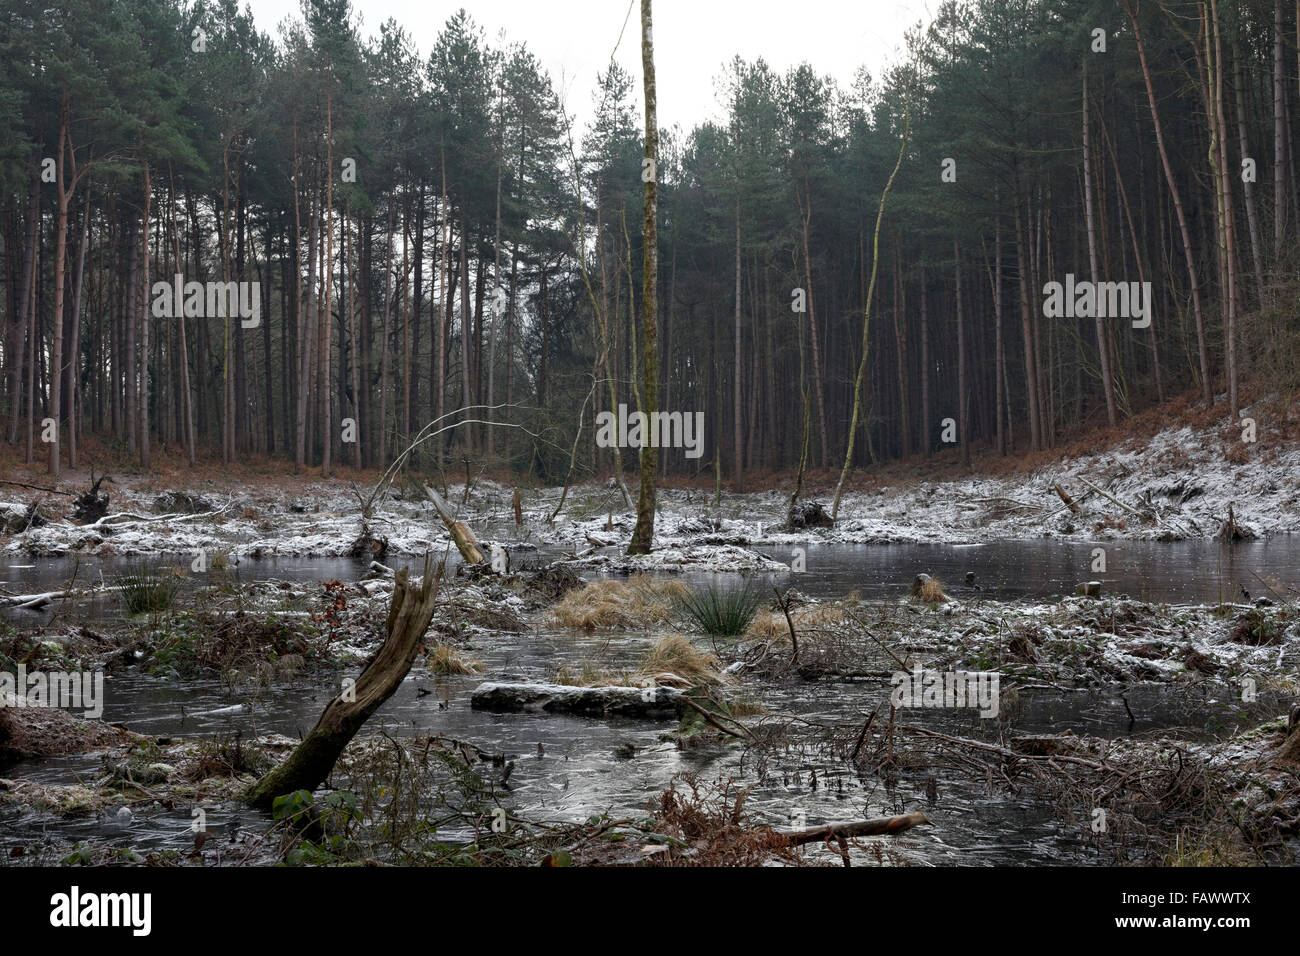 Mere at Delamere Forest, Cheshire, United Kingdom - Stock Image